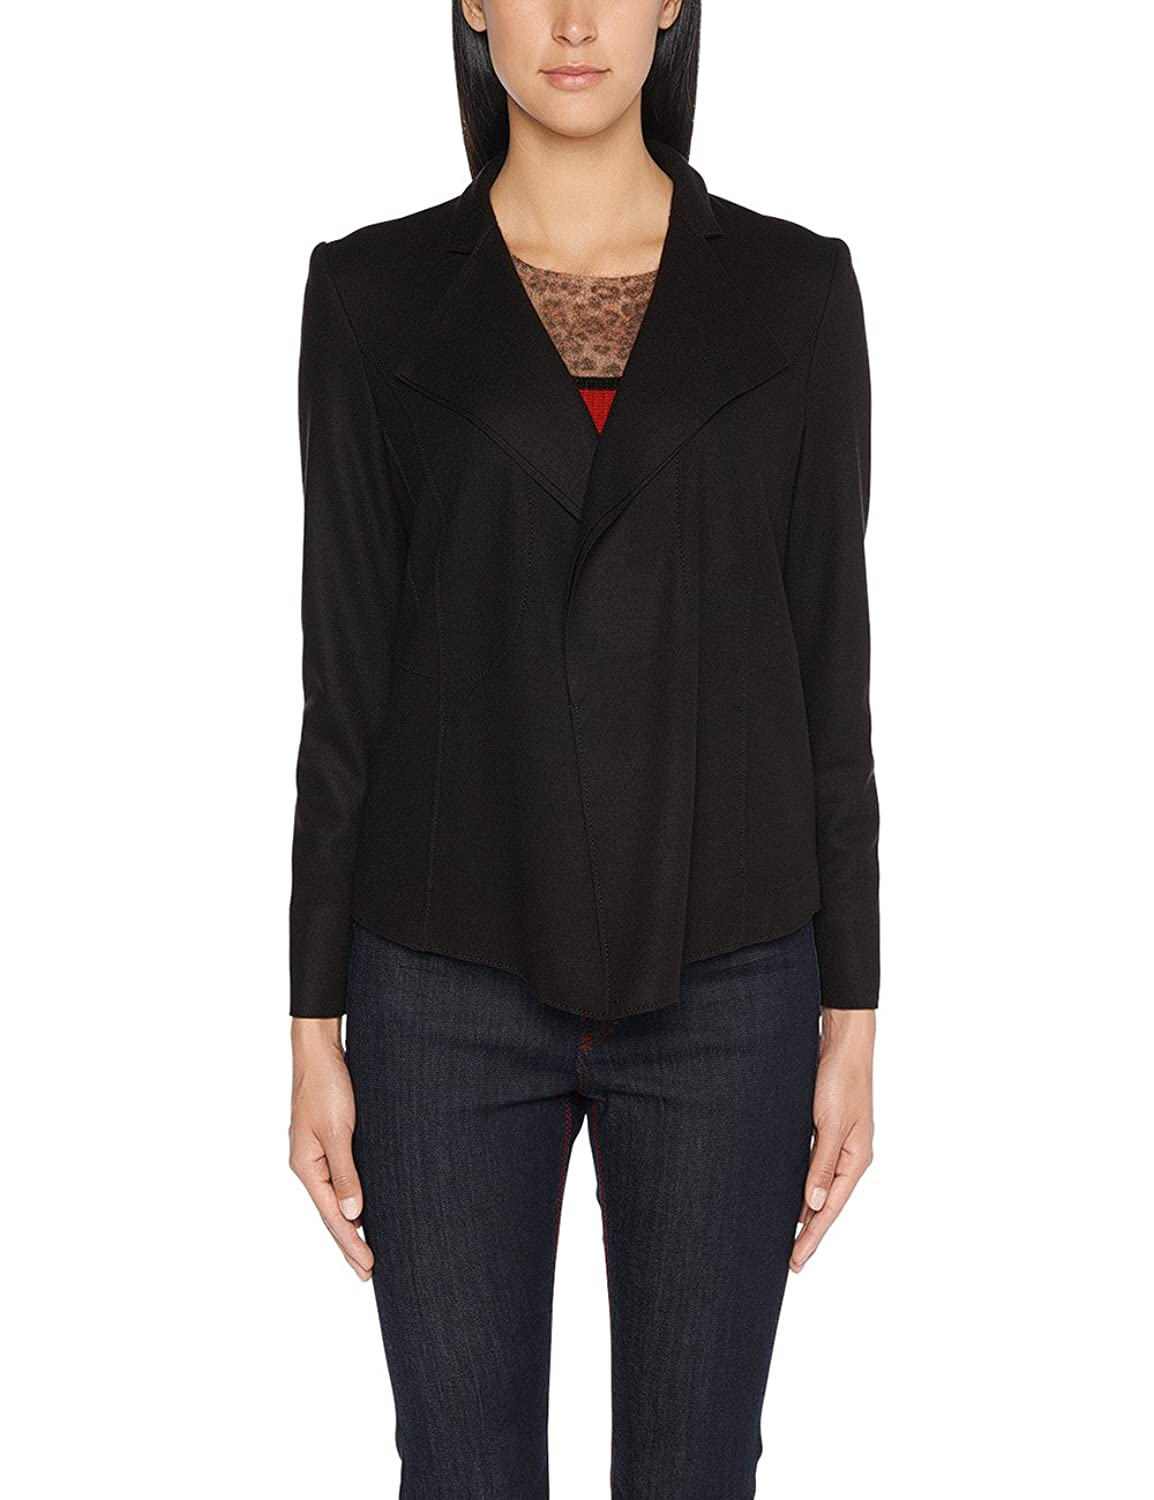 Marc Cain Collections Damen Blazer Fc 31.54 J42